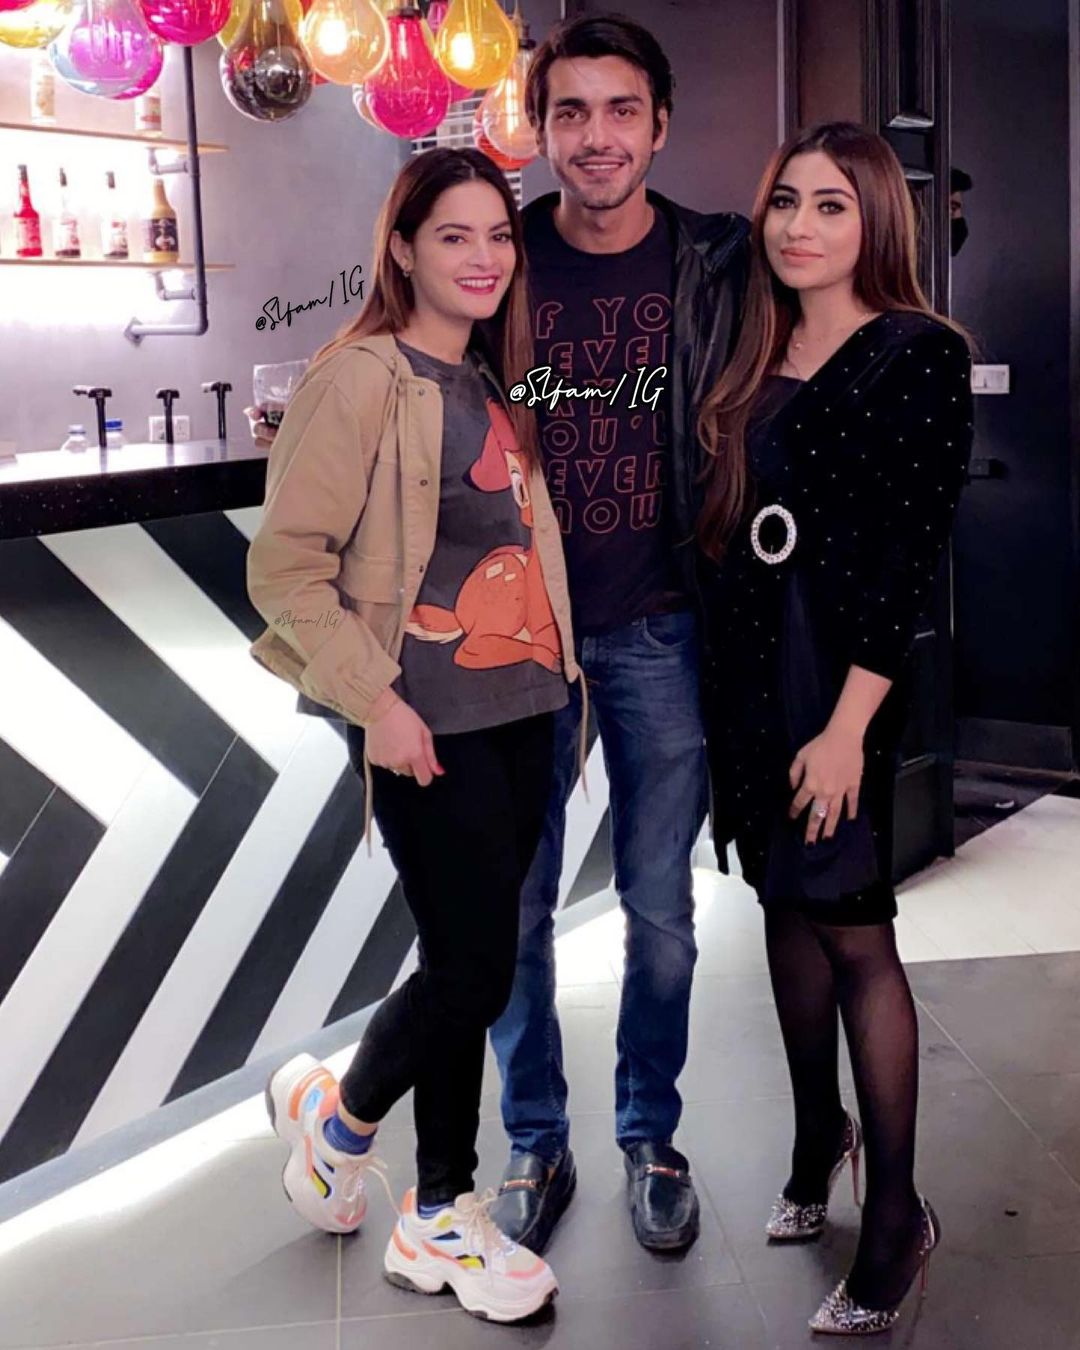 Minal Khan with Friends at a Birthday Party